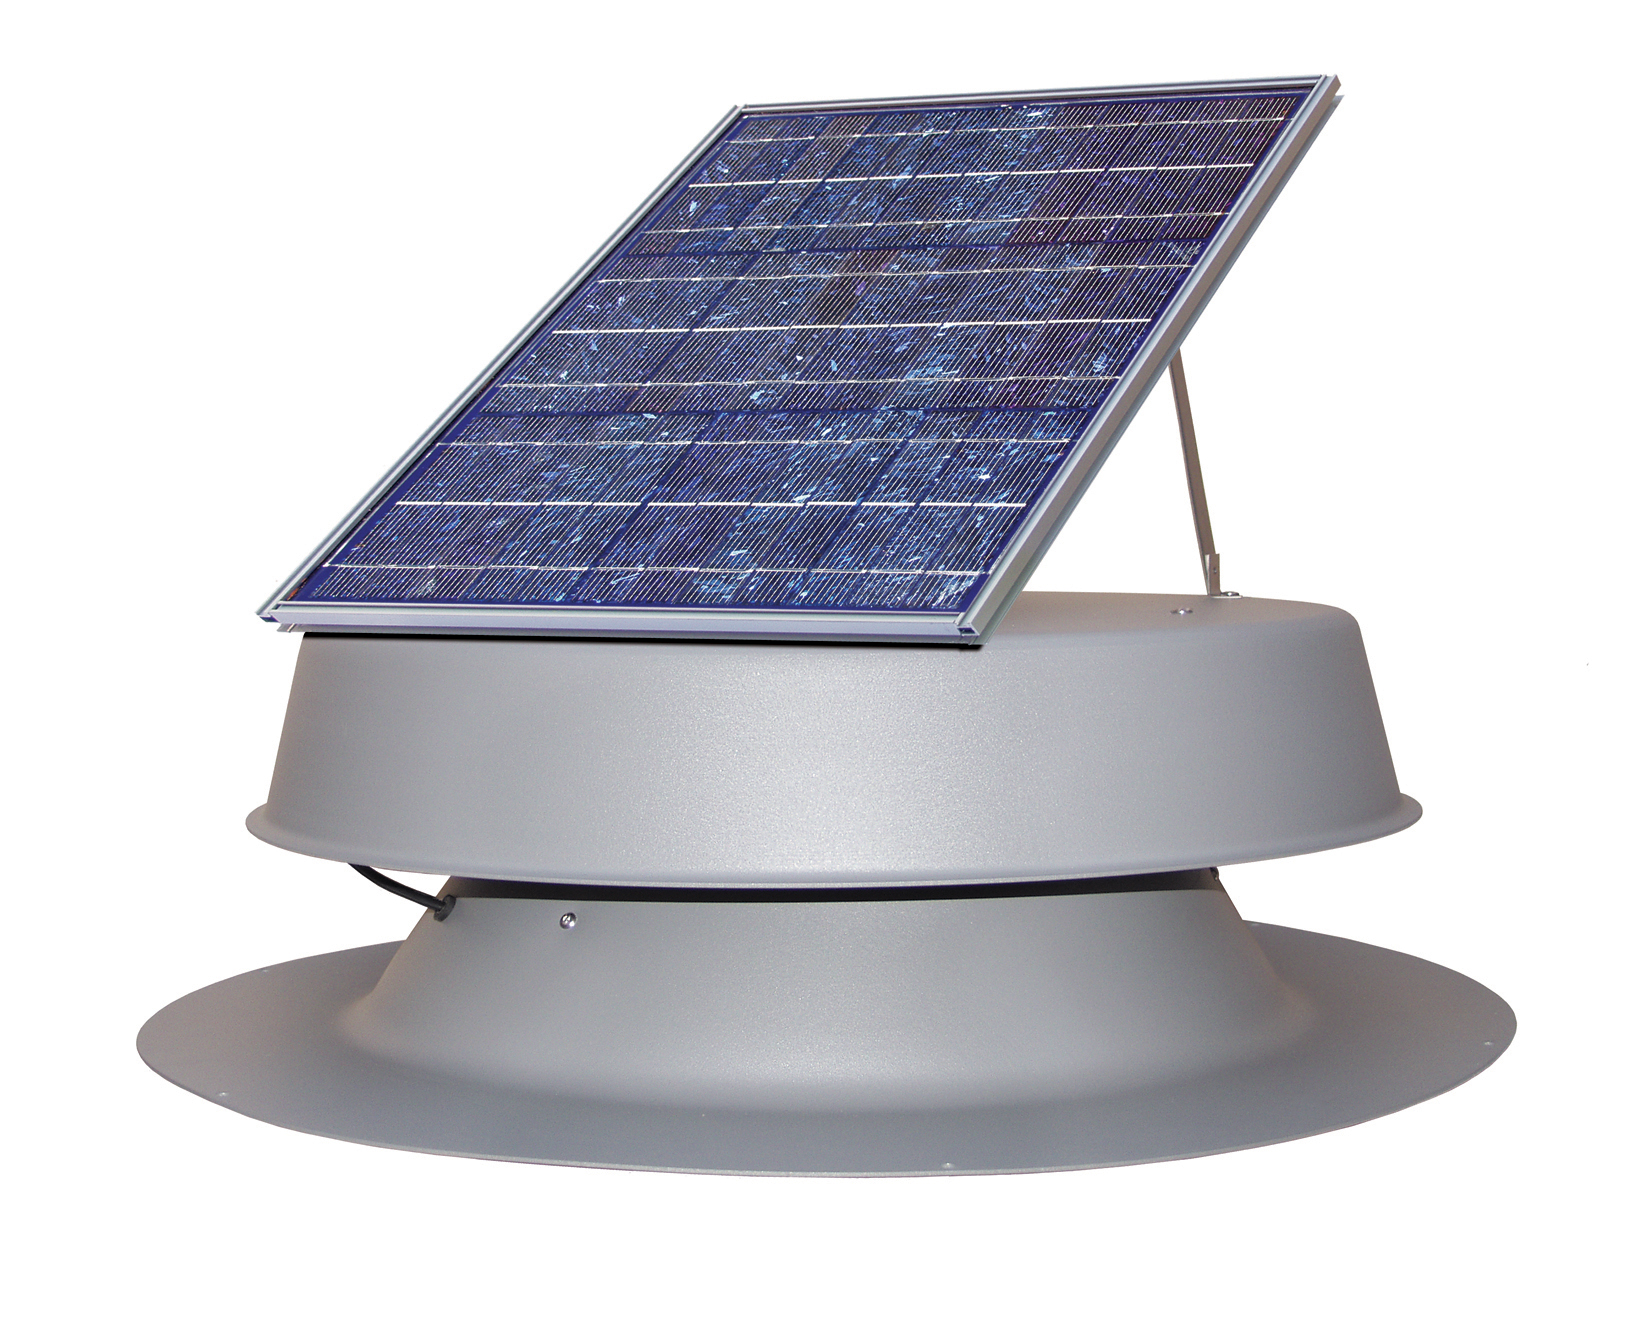 Solar Panel Adjusts to Best Collection Angle